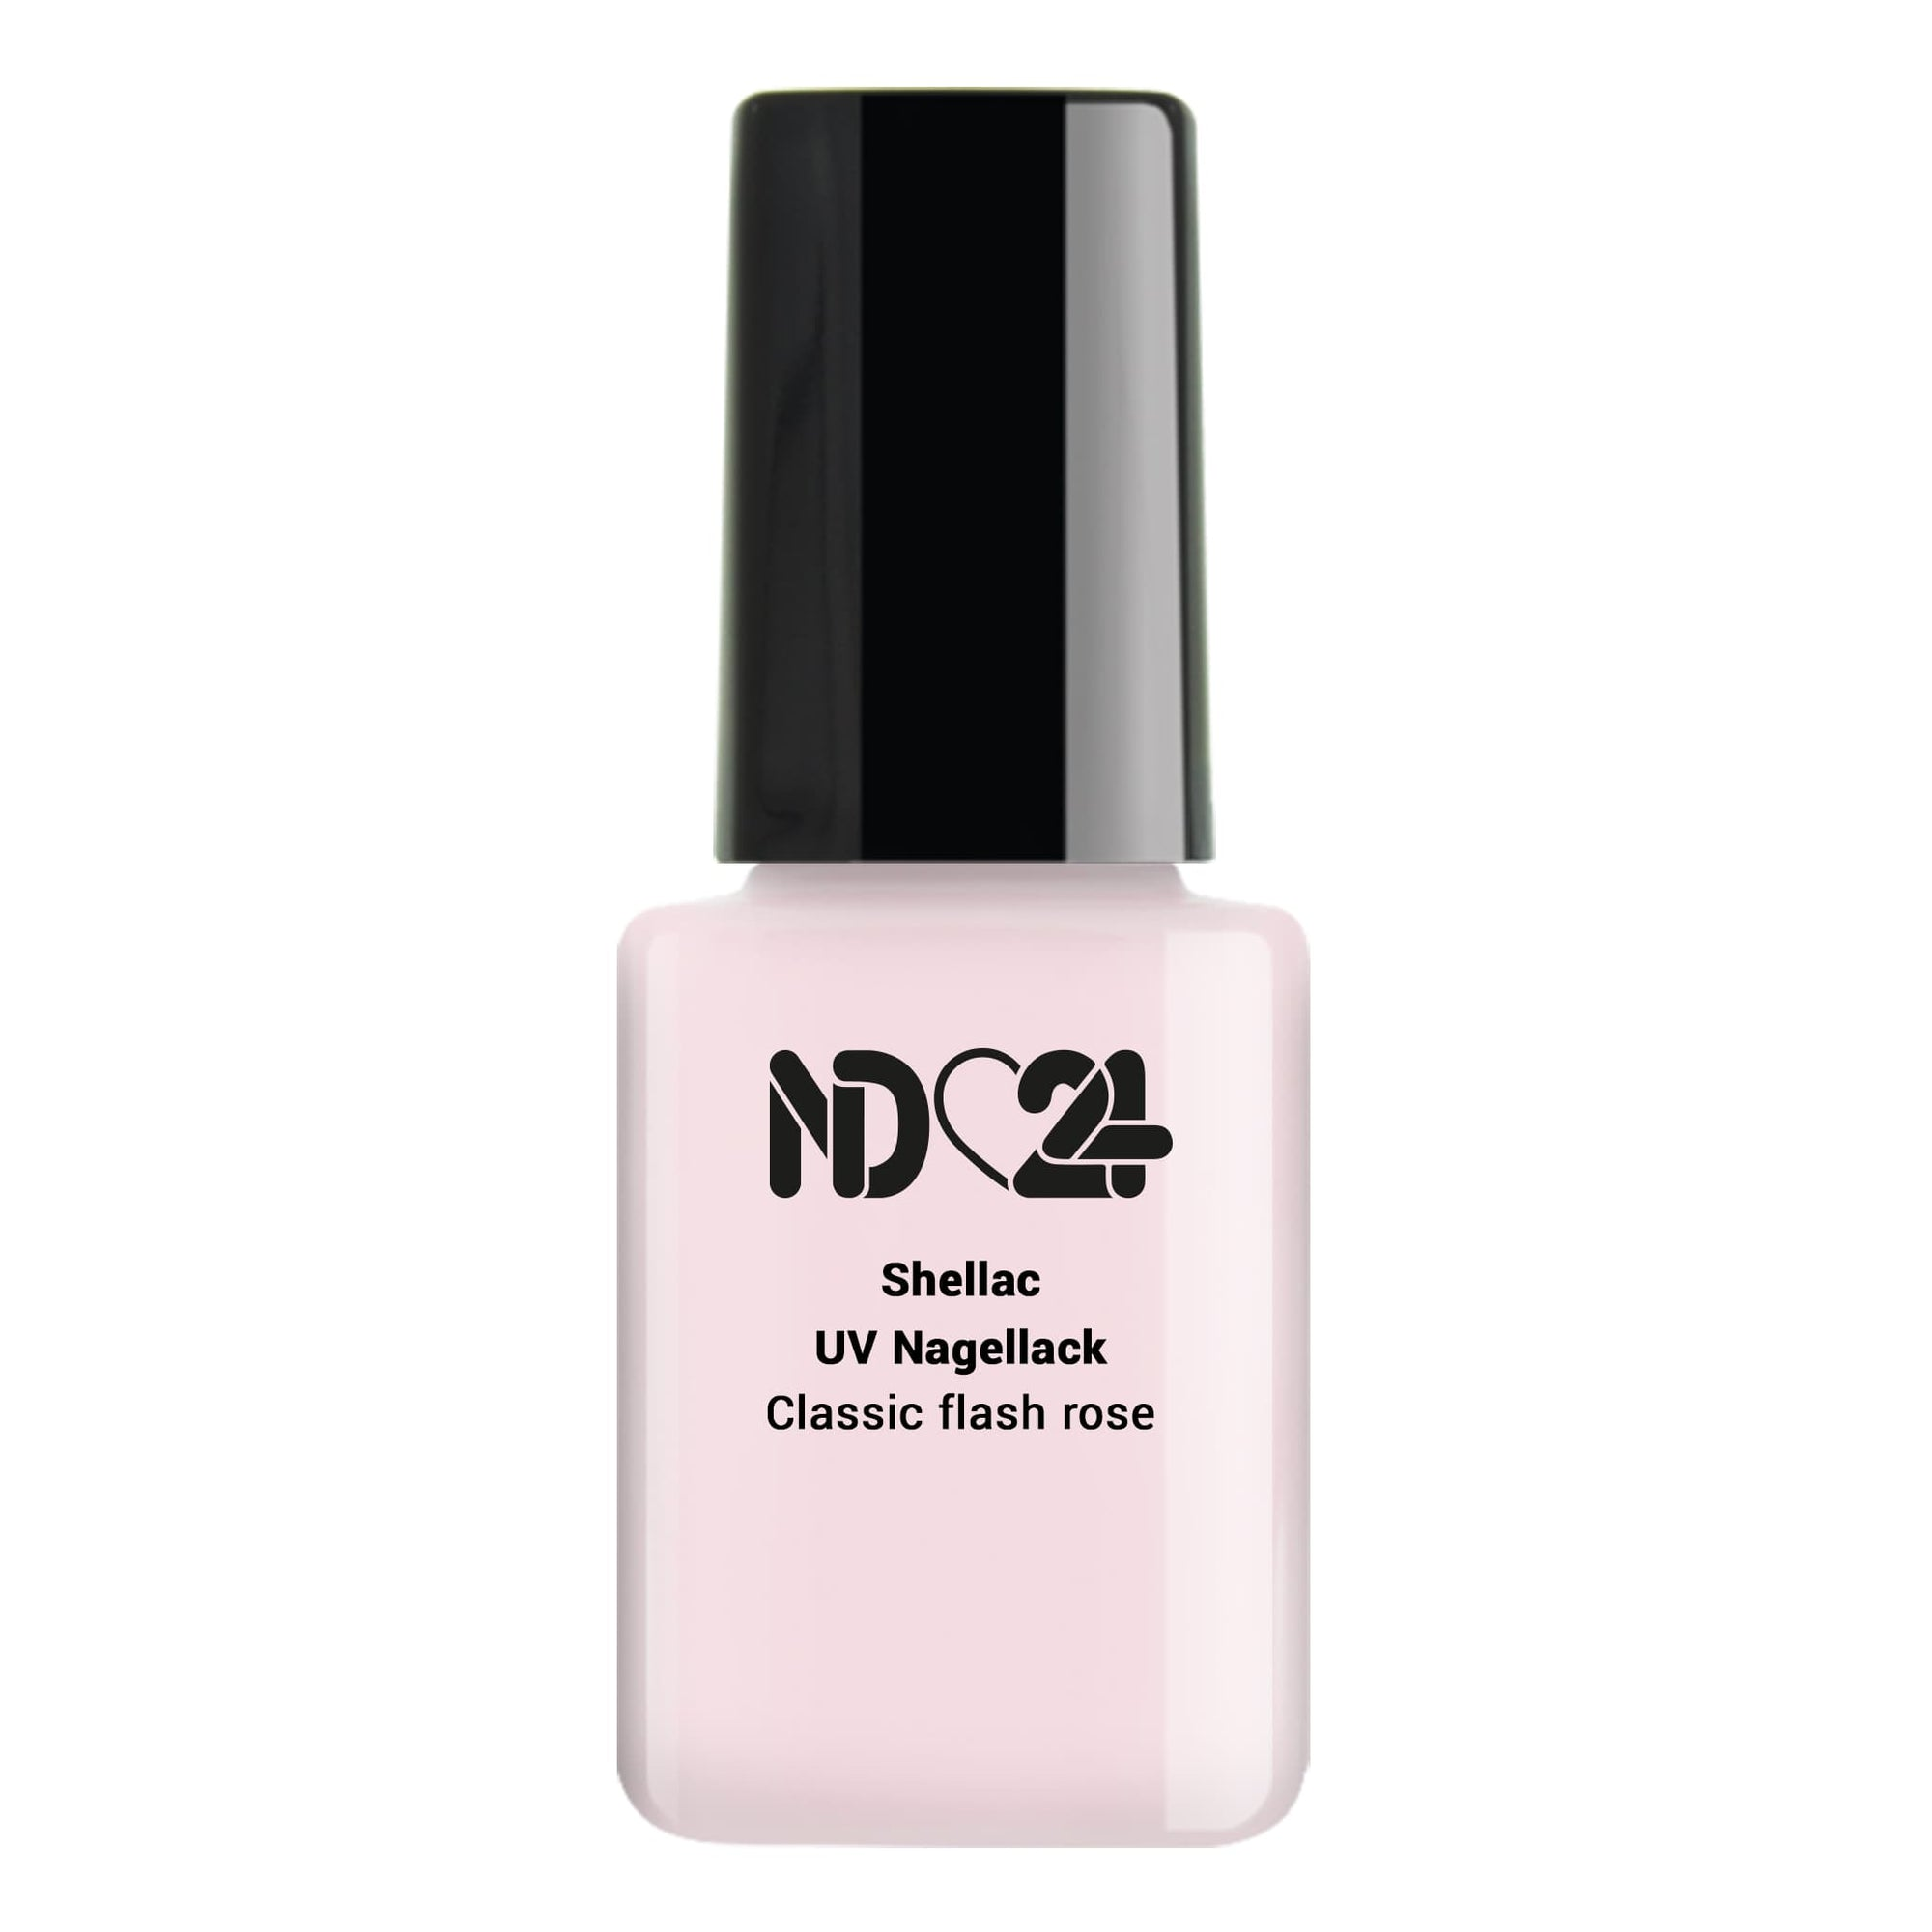 Shellac UV Nagellack Classic flash rose